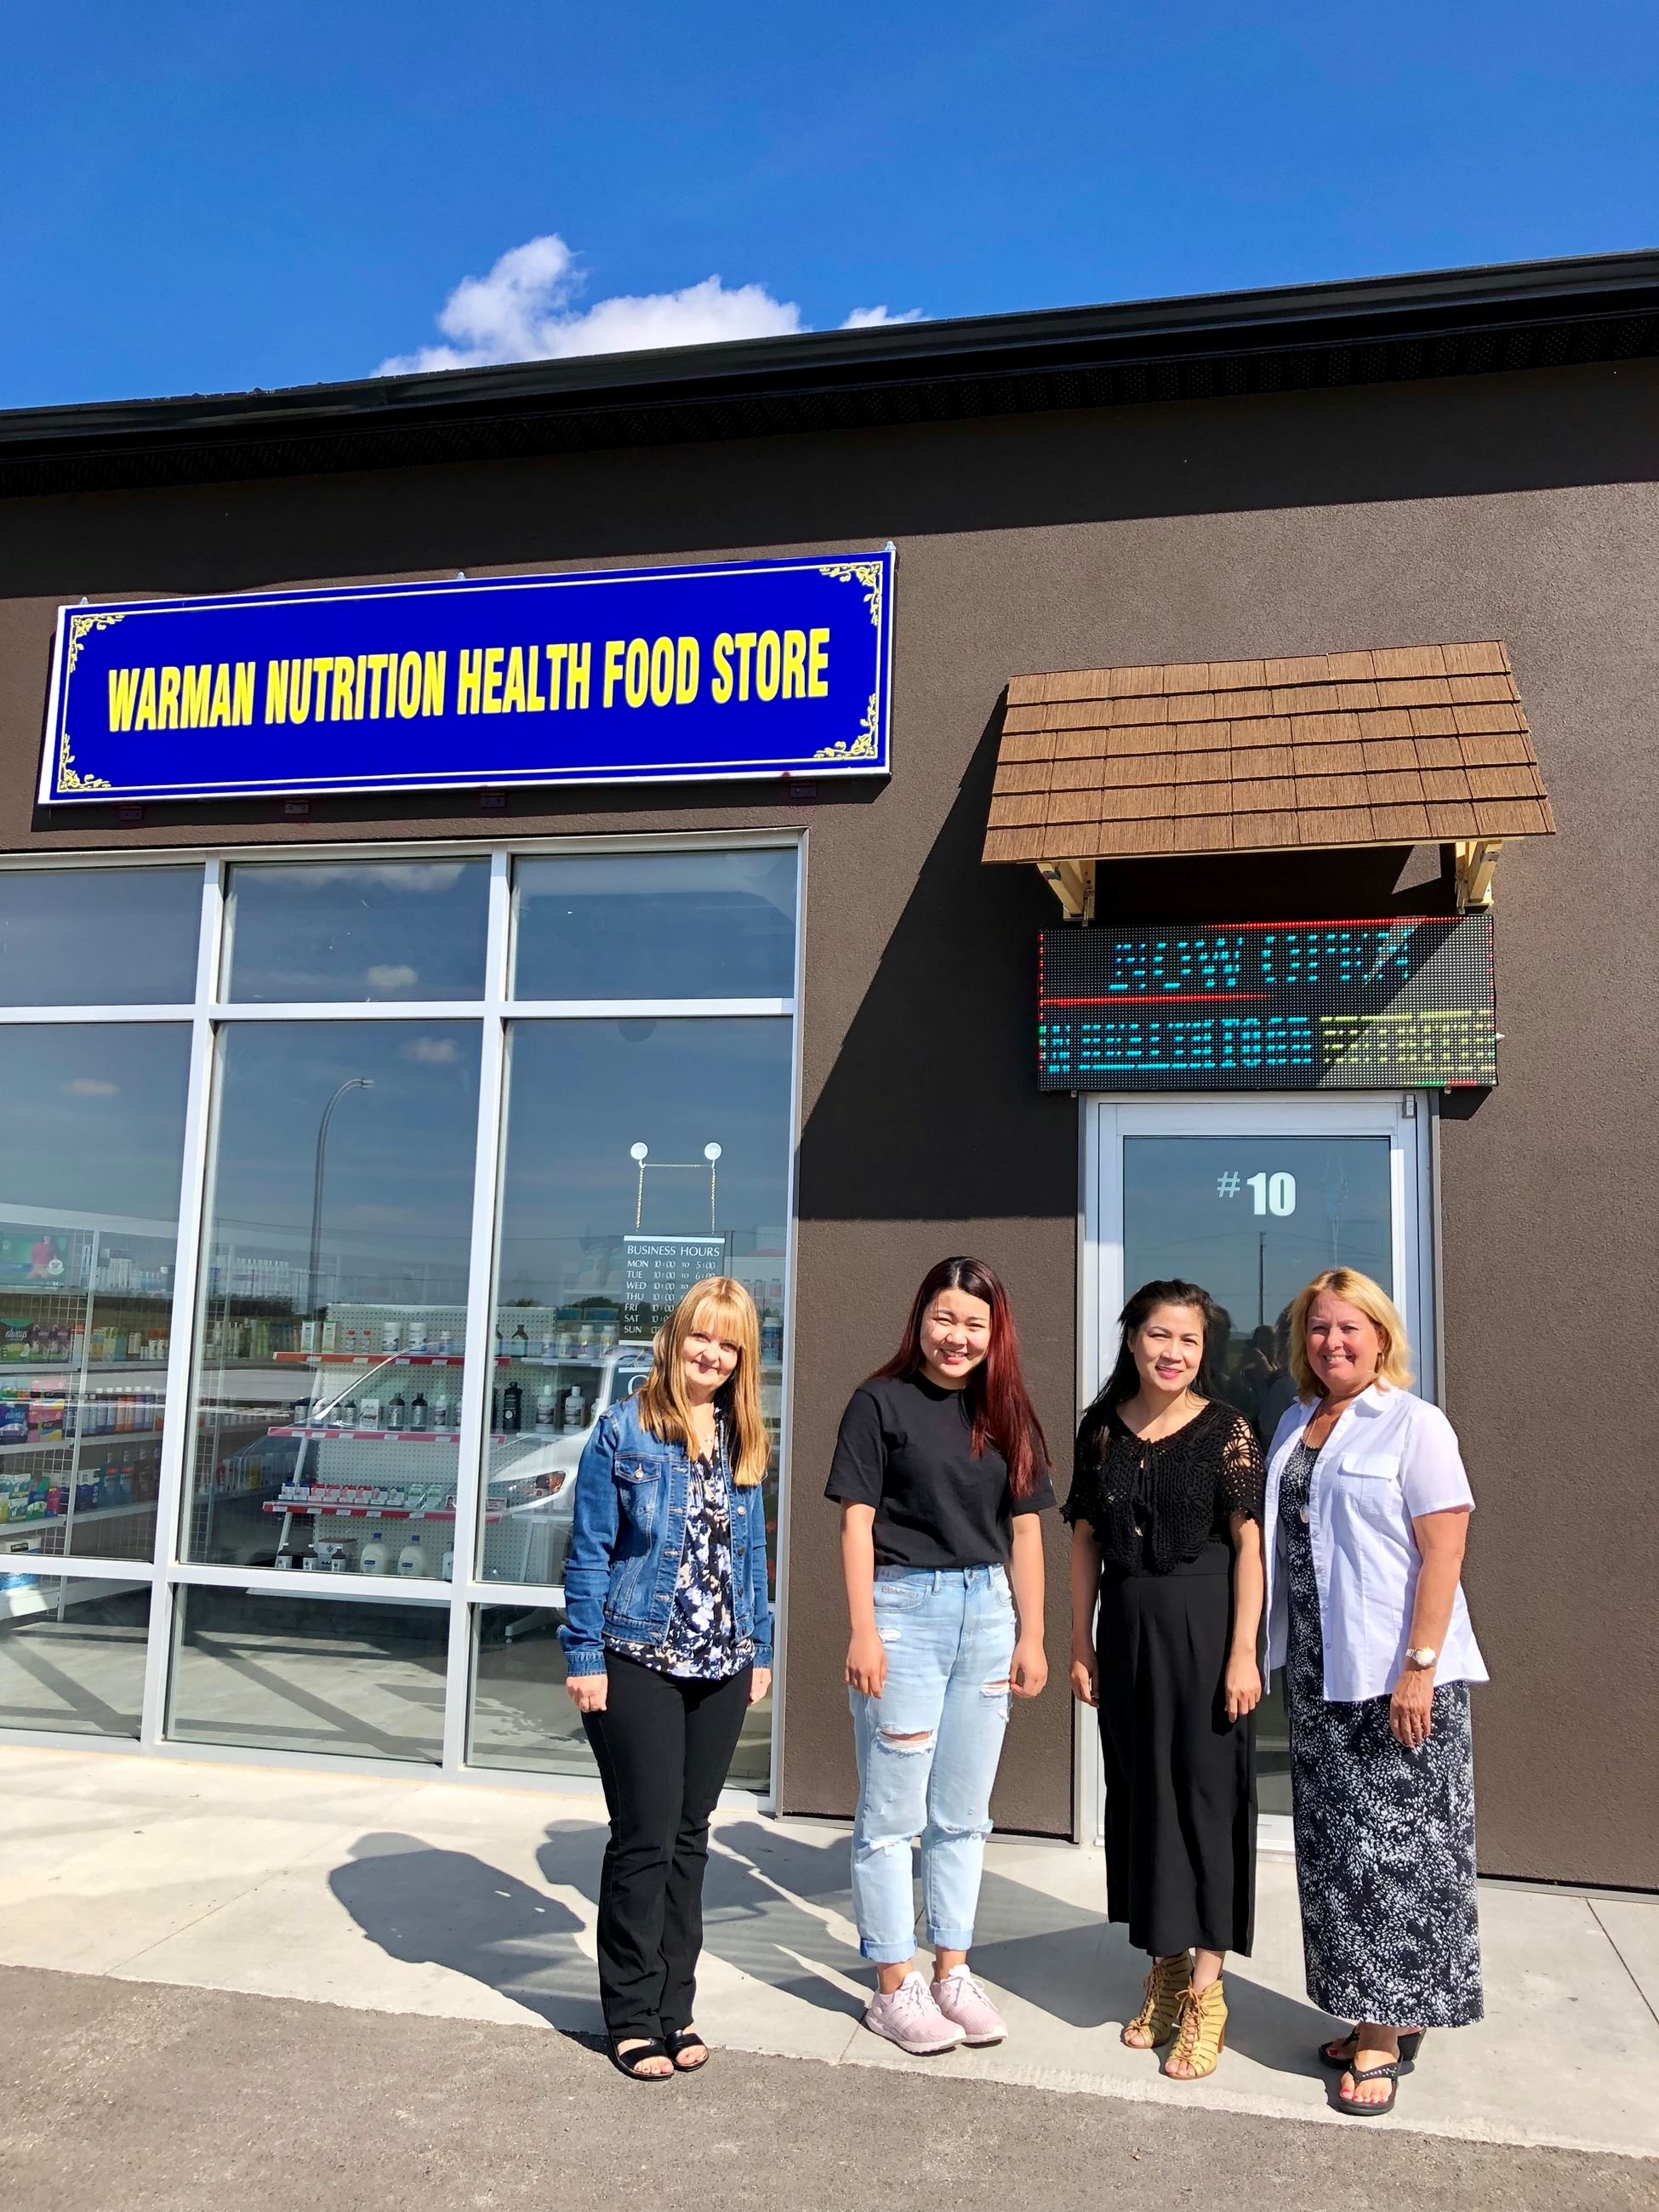 Warman Nutrition Health Food Store